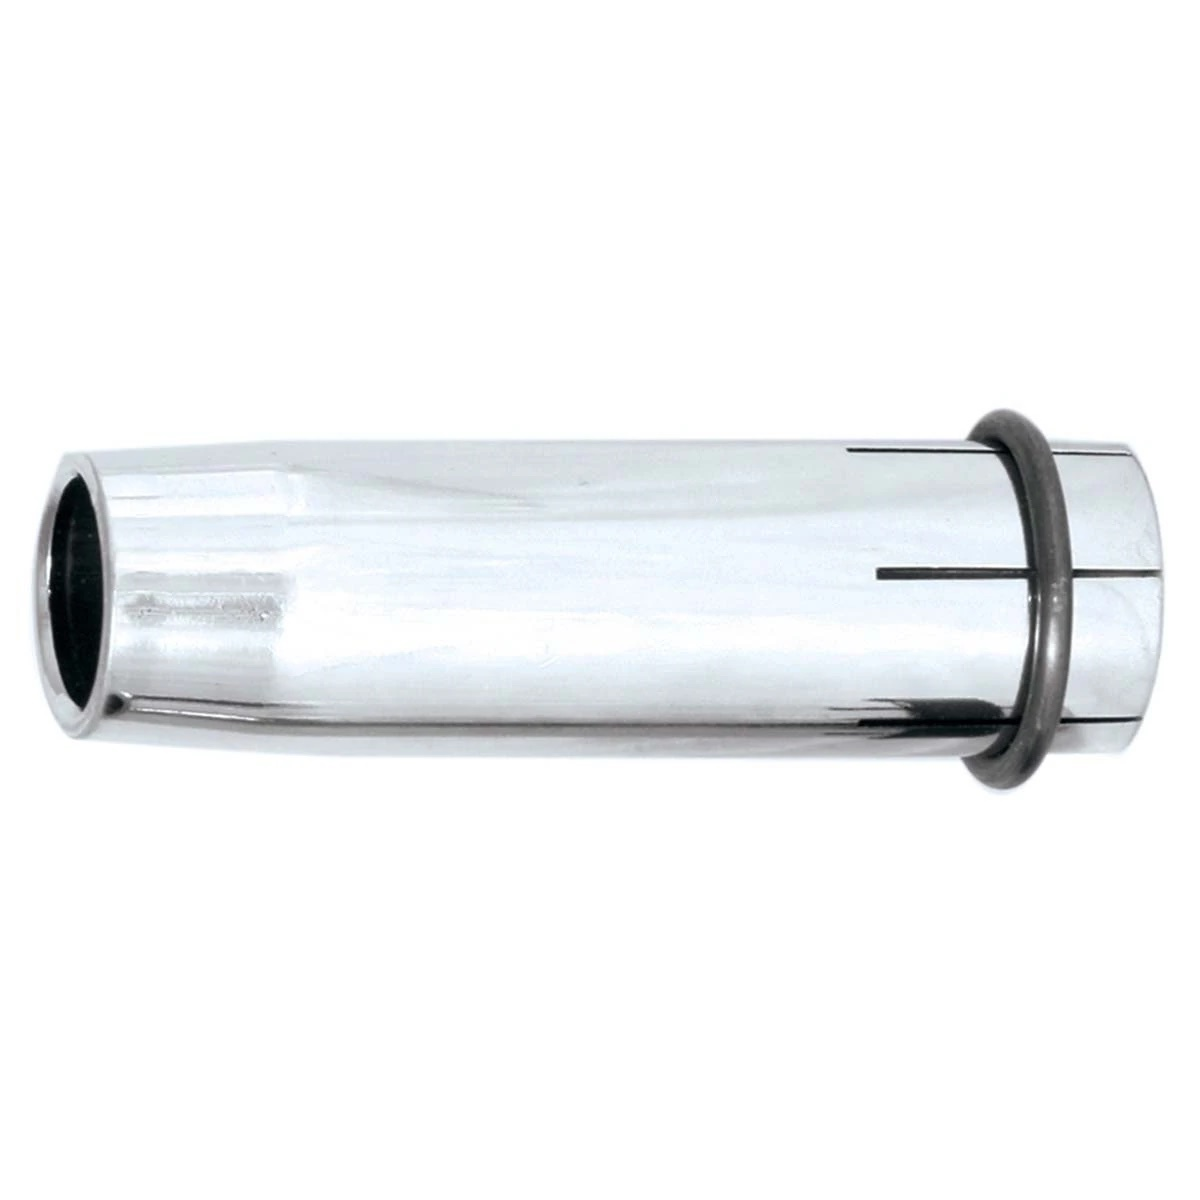 BZ 40 CONICAL NOZZLE [Pack of 2]